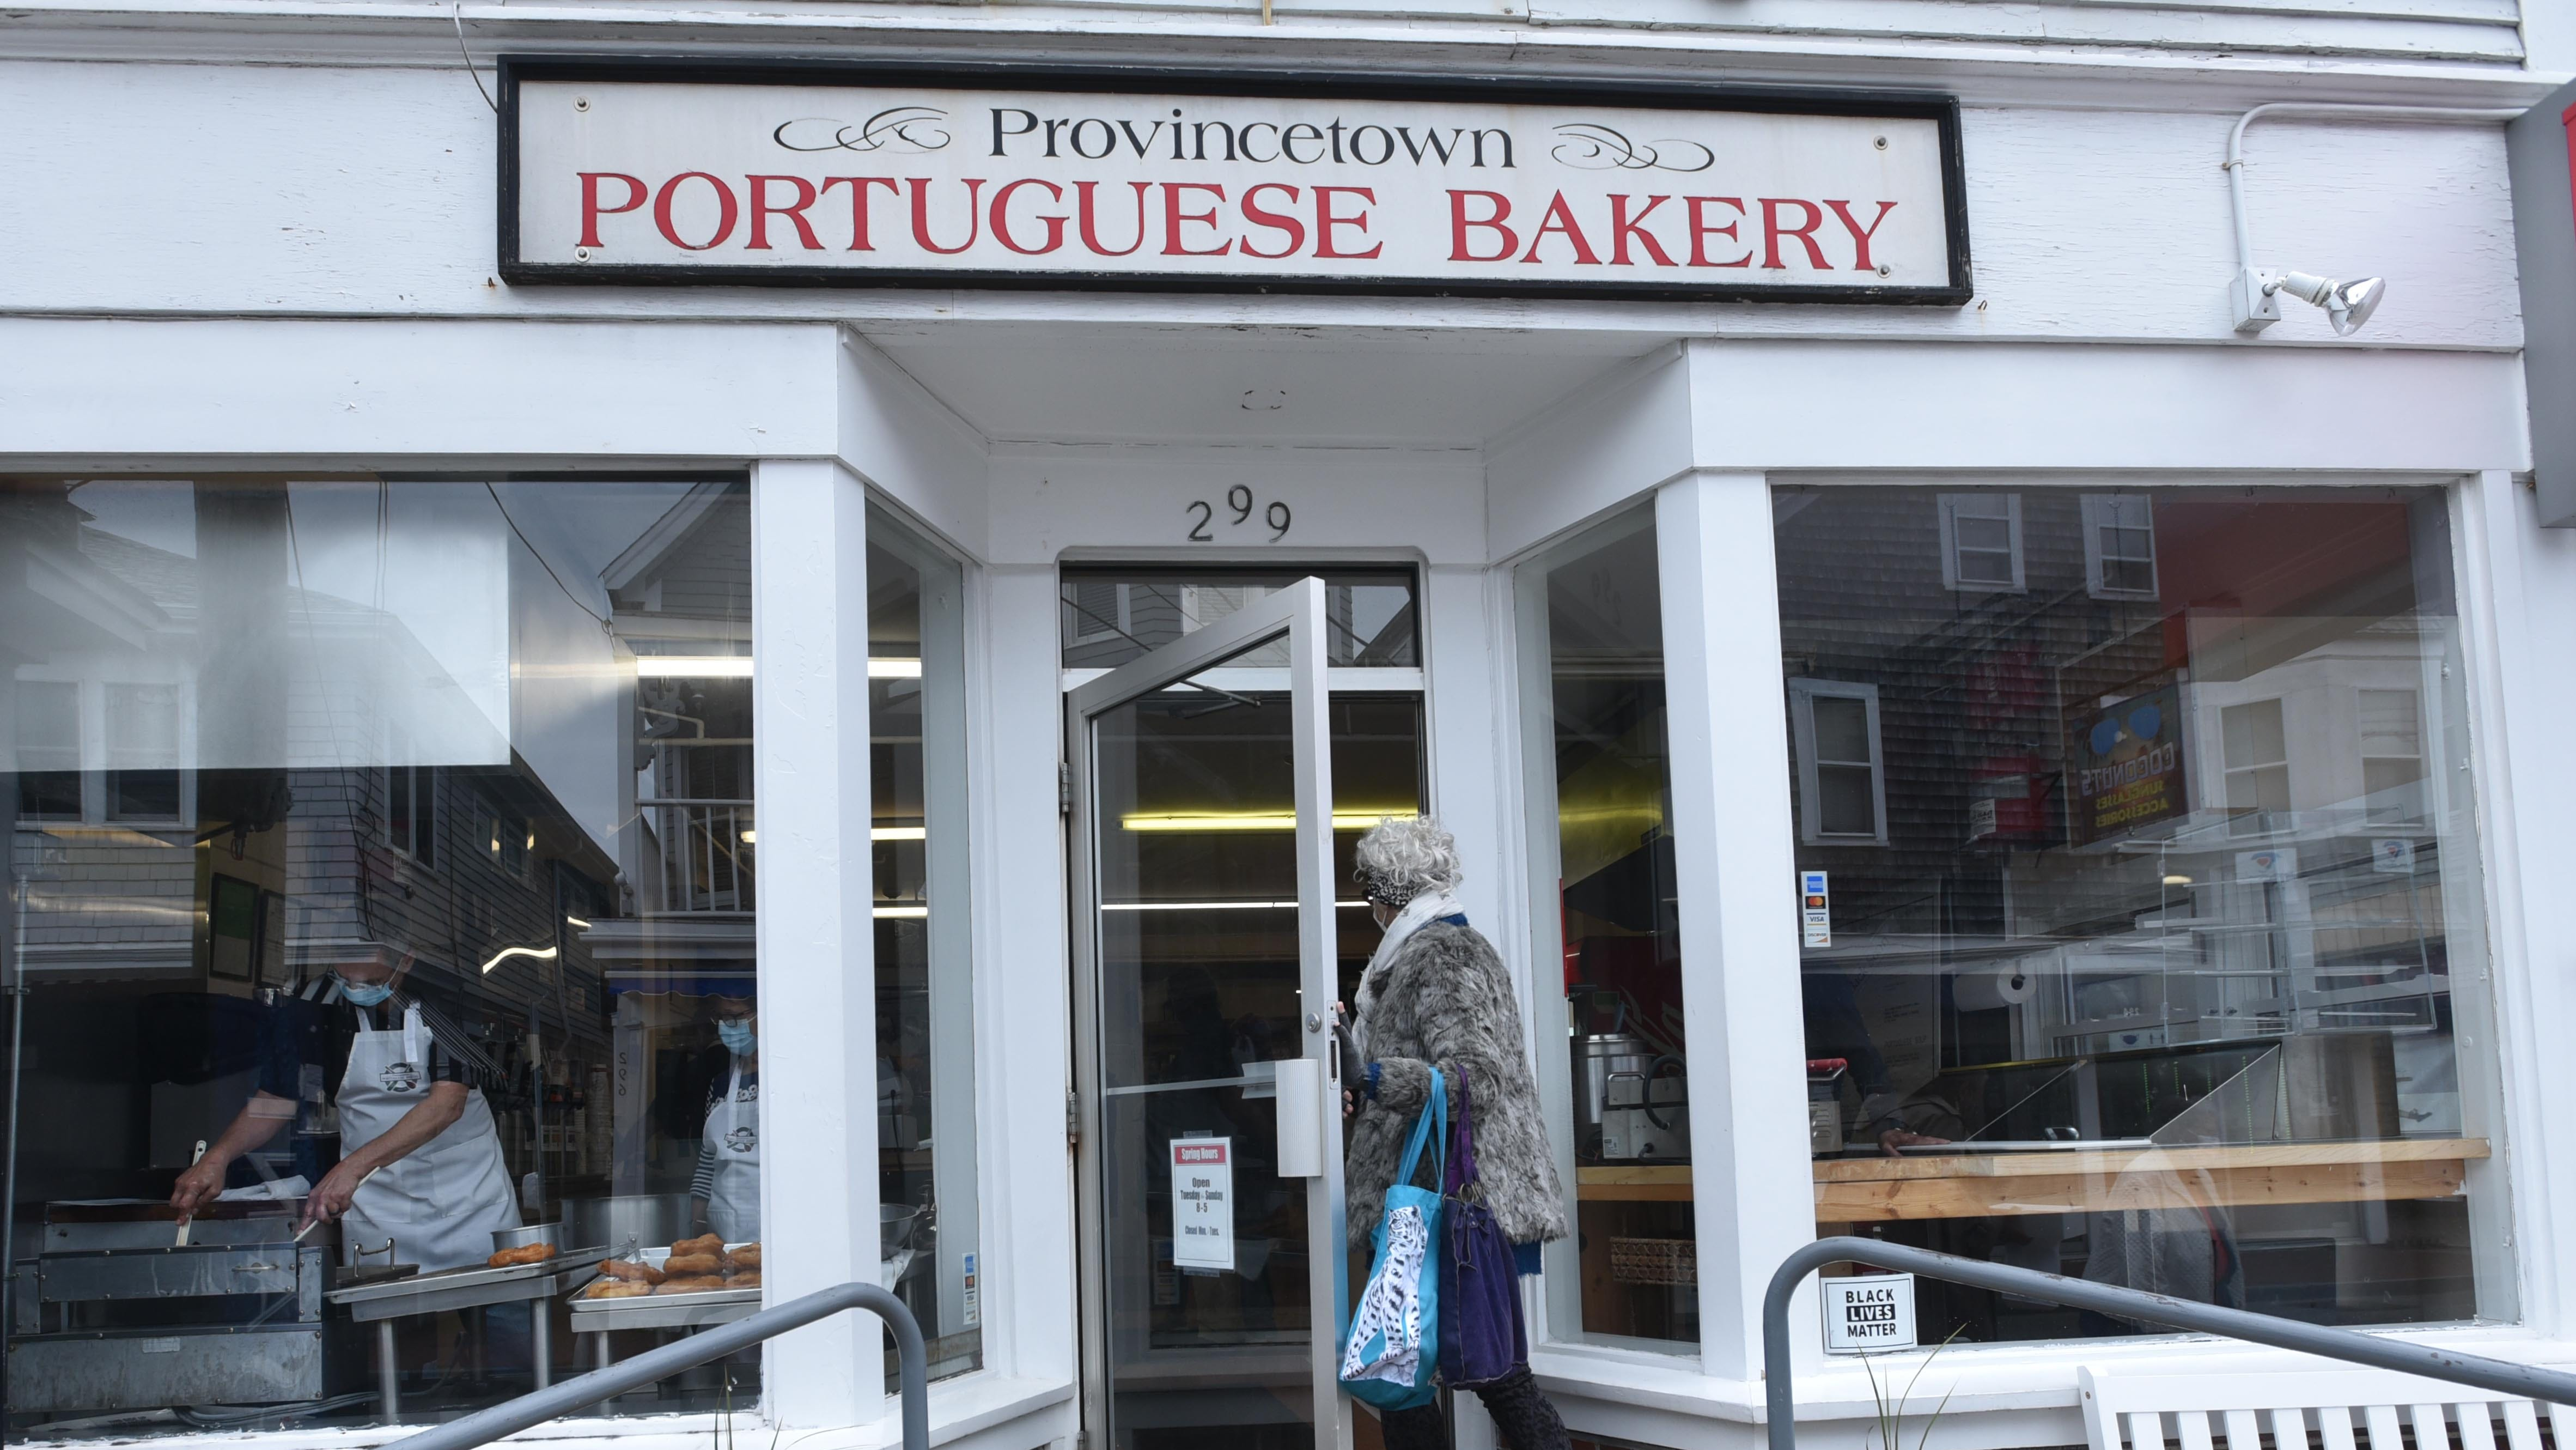 New owners reopen the Provincetown Portuguese Bakery to a warm response